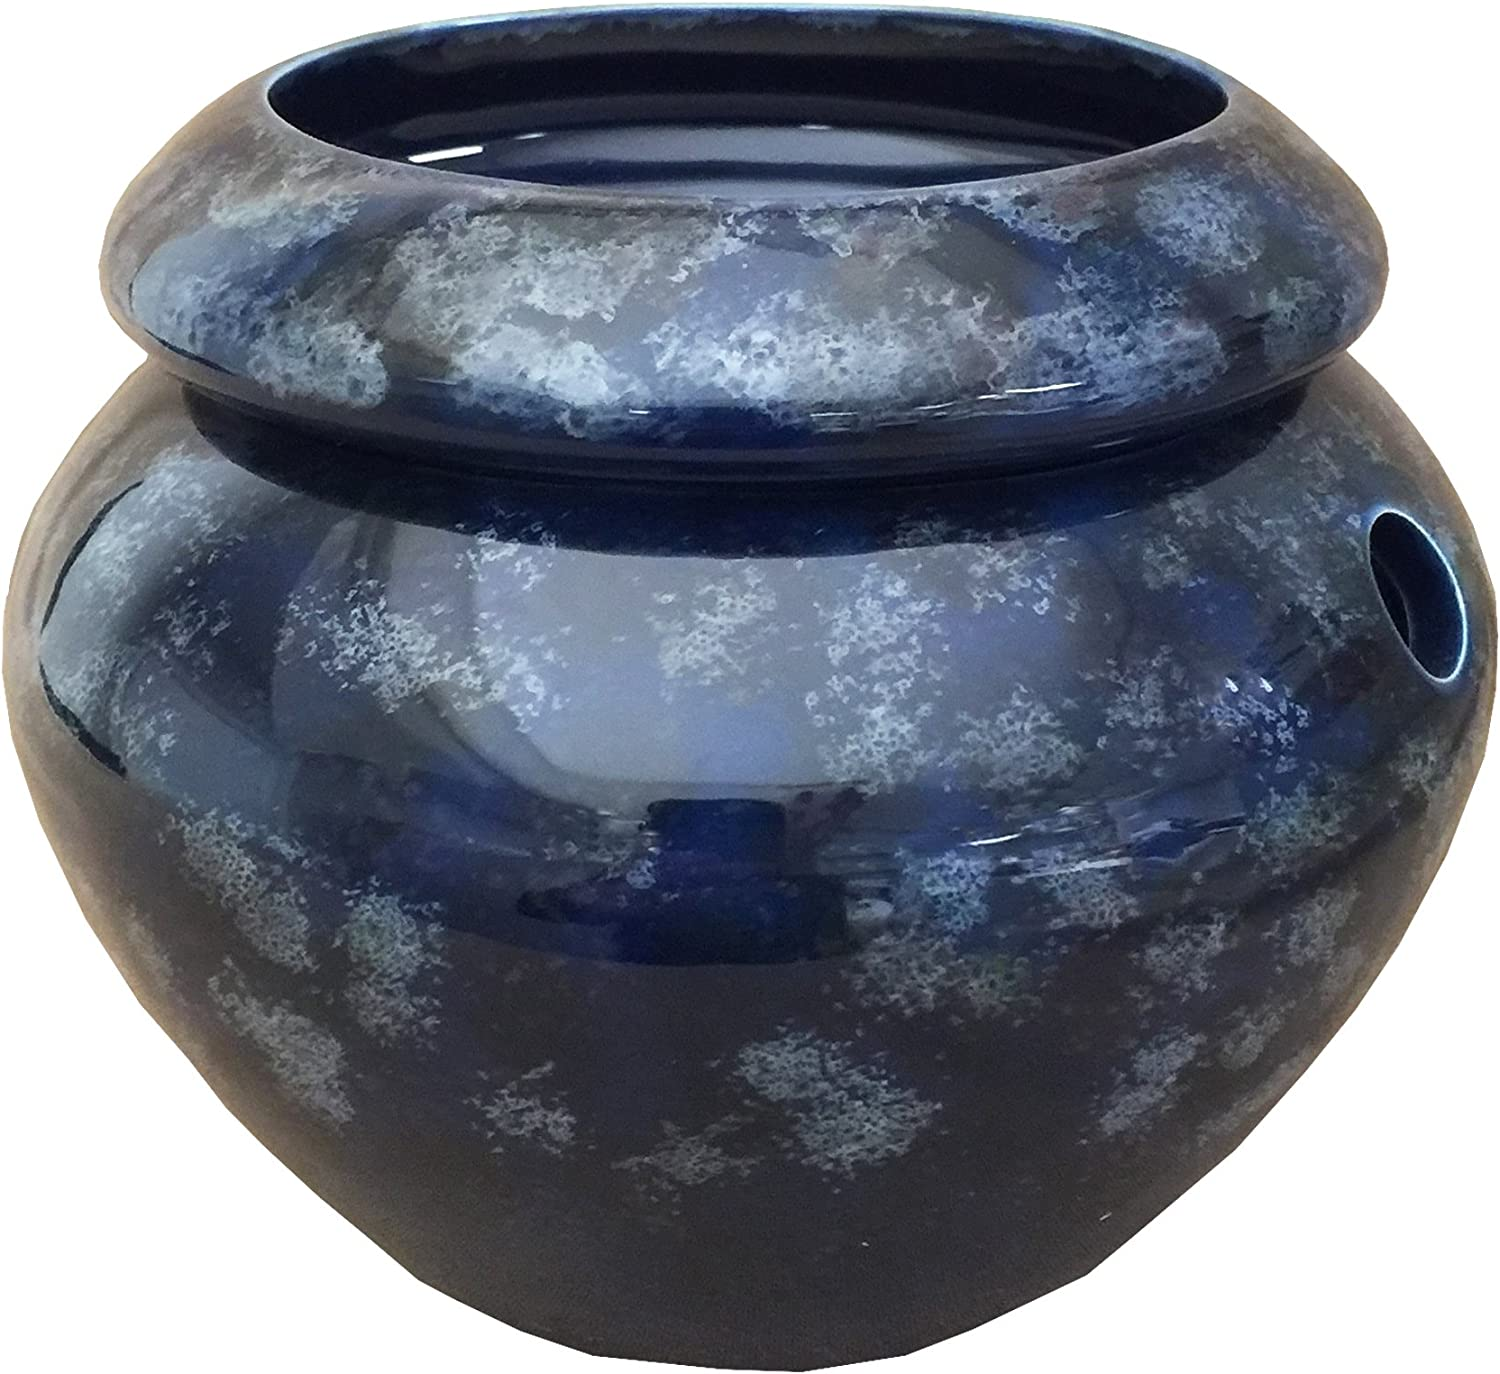 TVP Pottery Urn-Shaped Self-Watering Planter